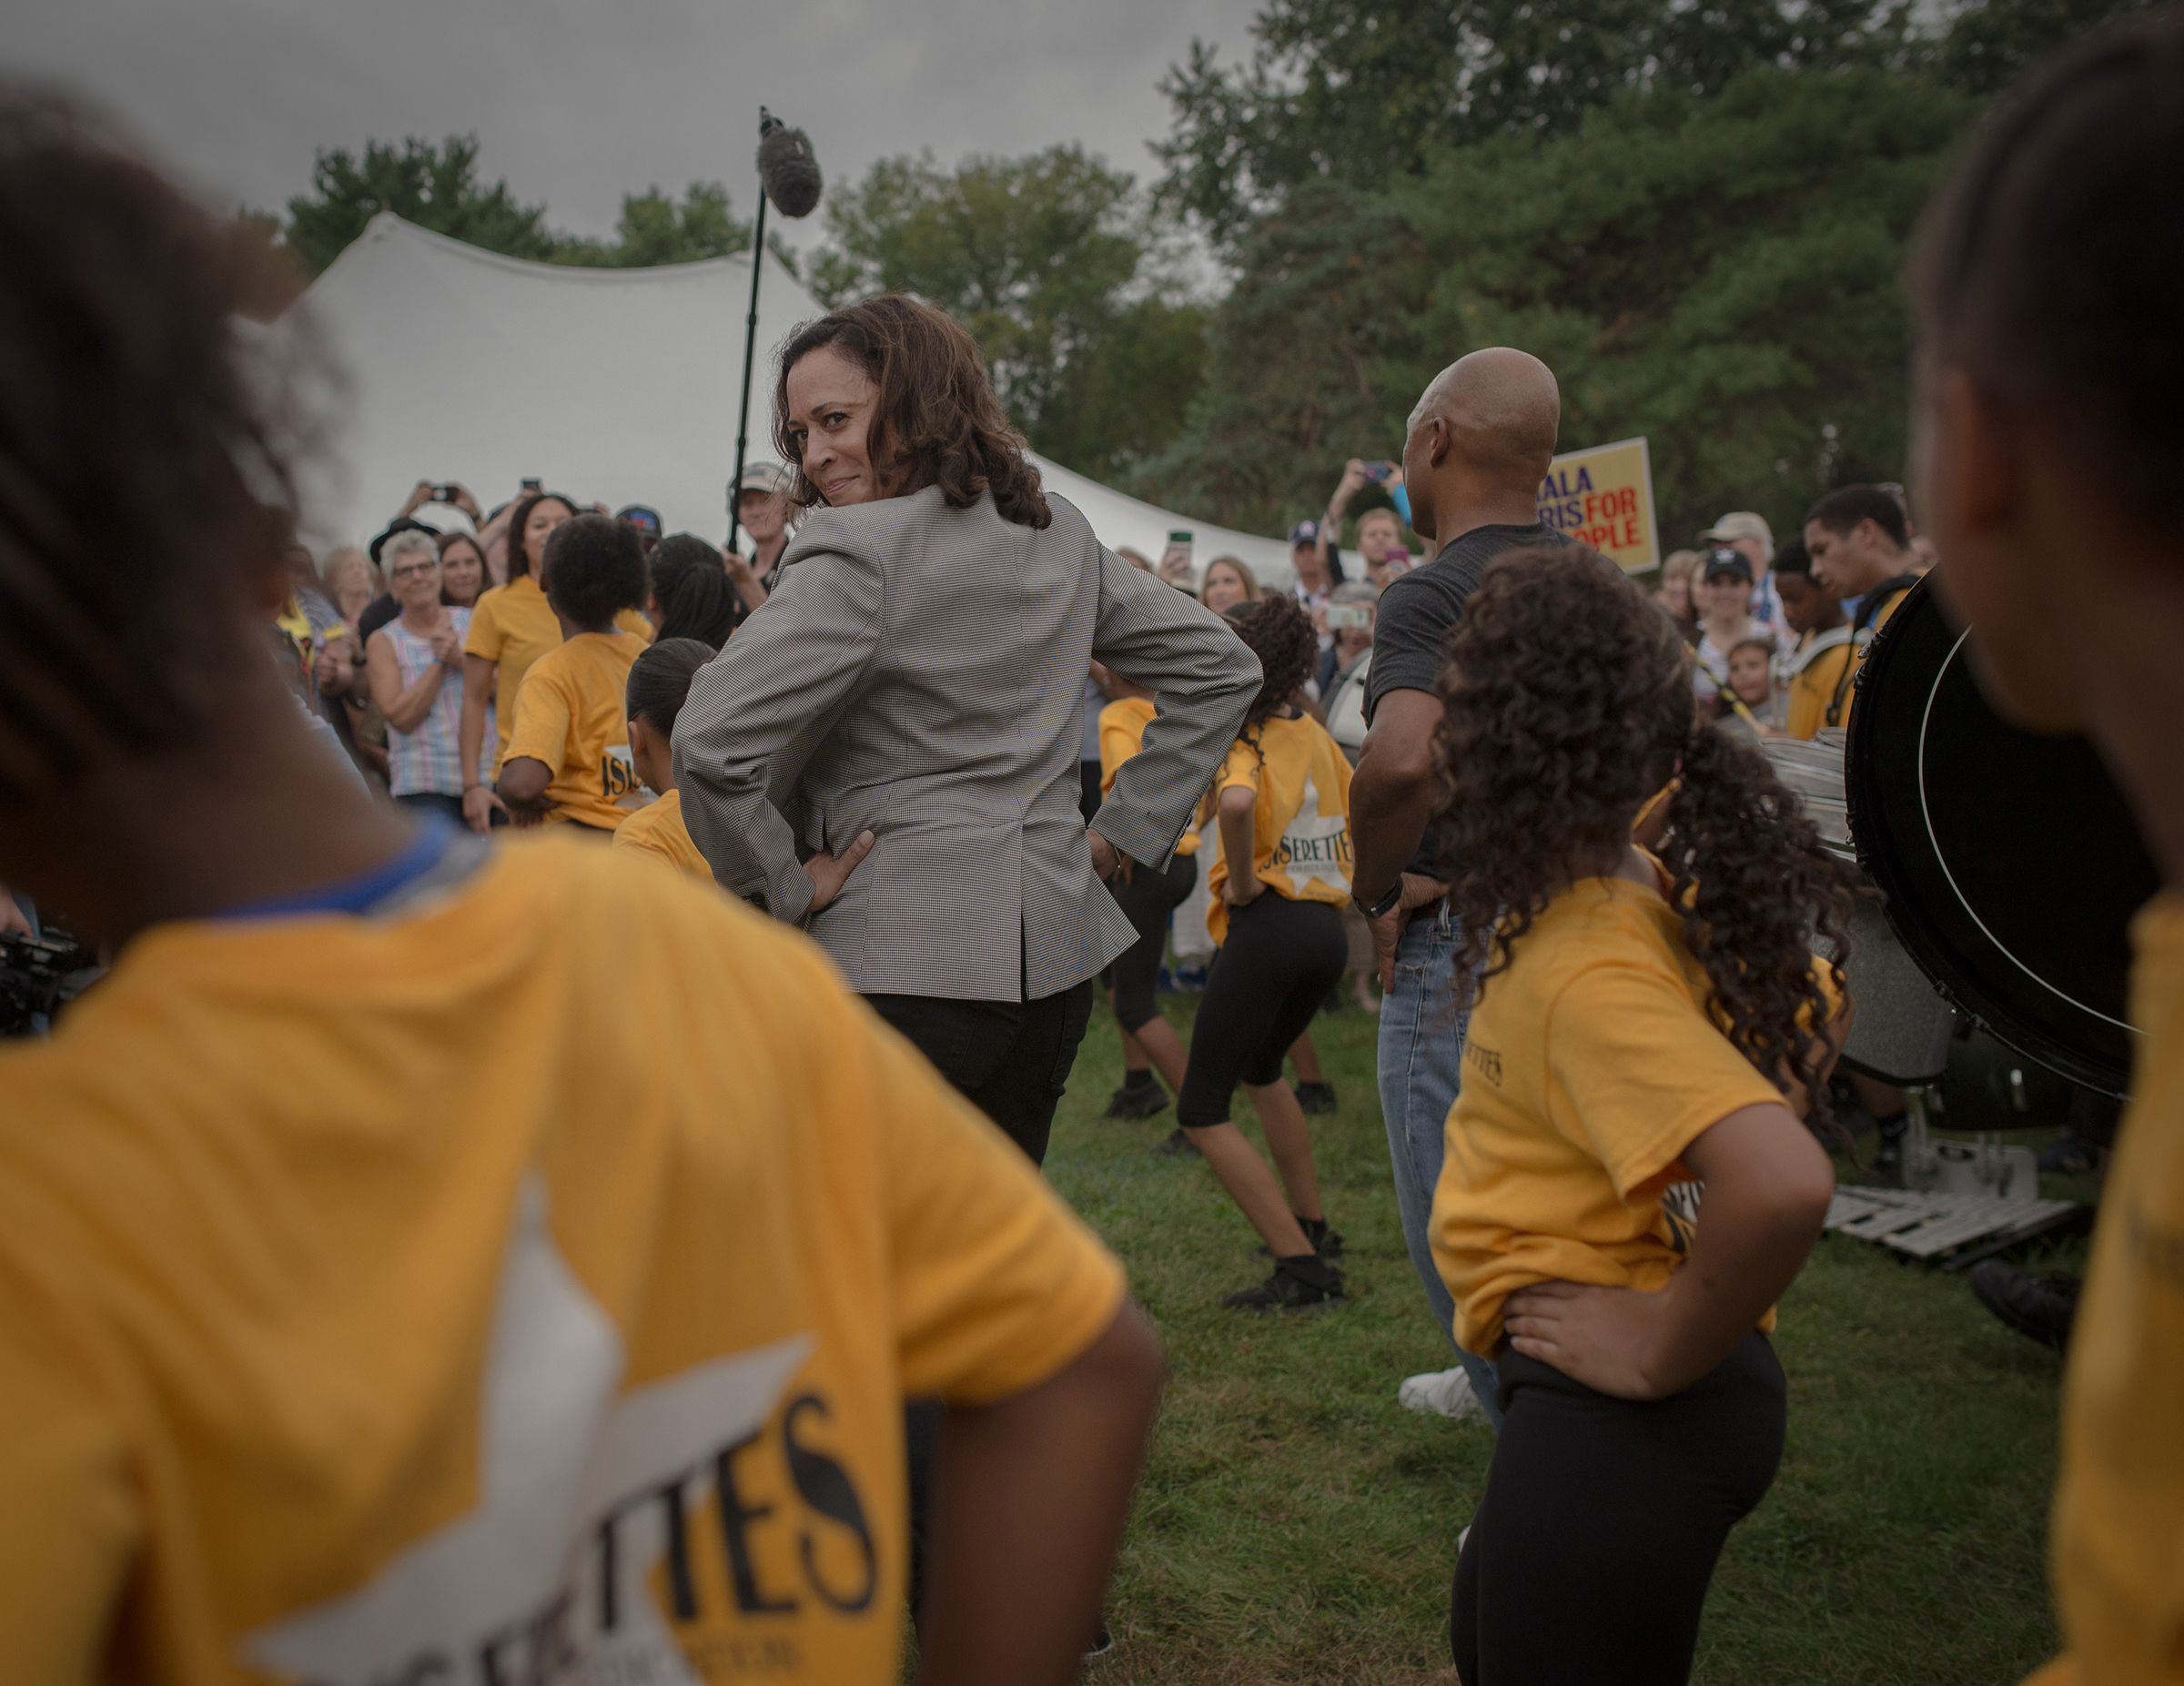 Kamala Harris takes a cue from a local drill team at the Des Moines Steakfry during her campaign for presidency on Sept. 21